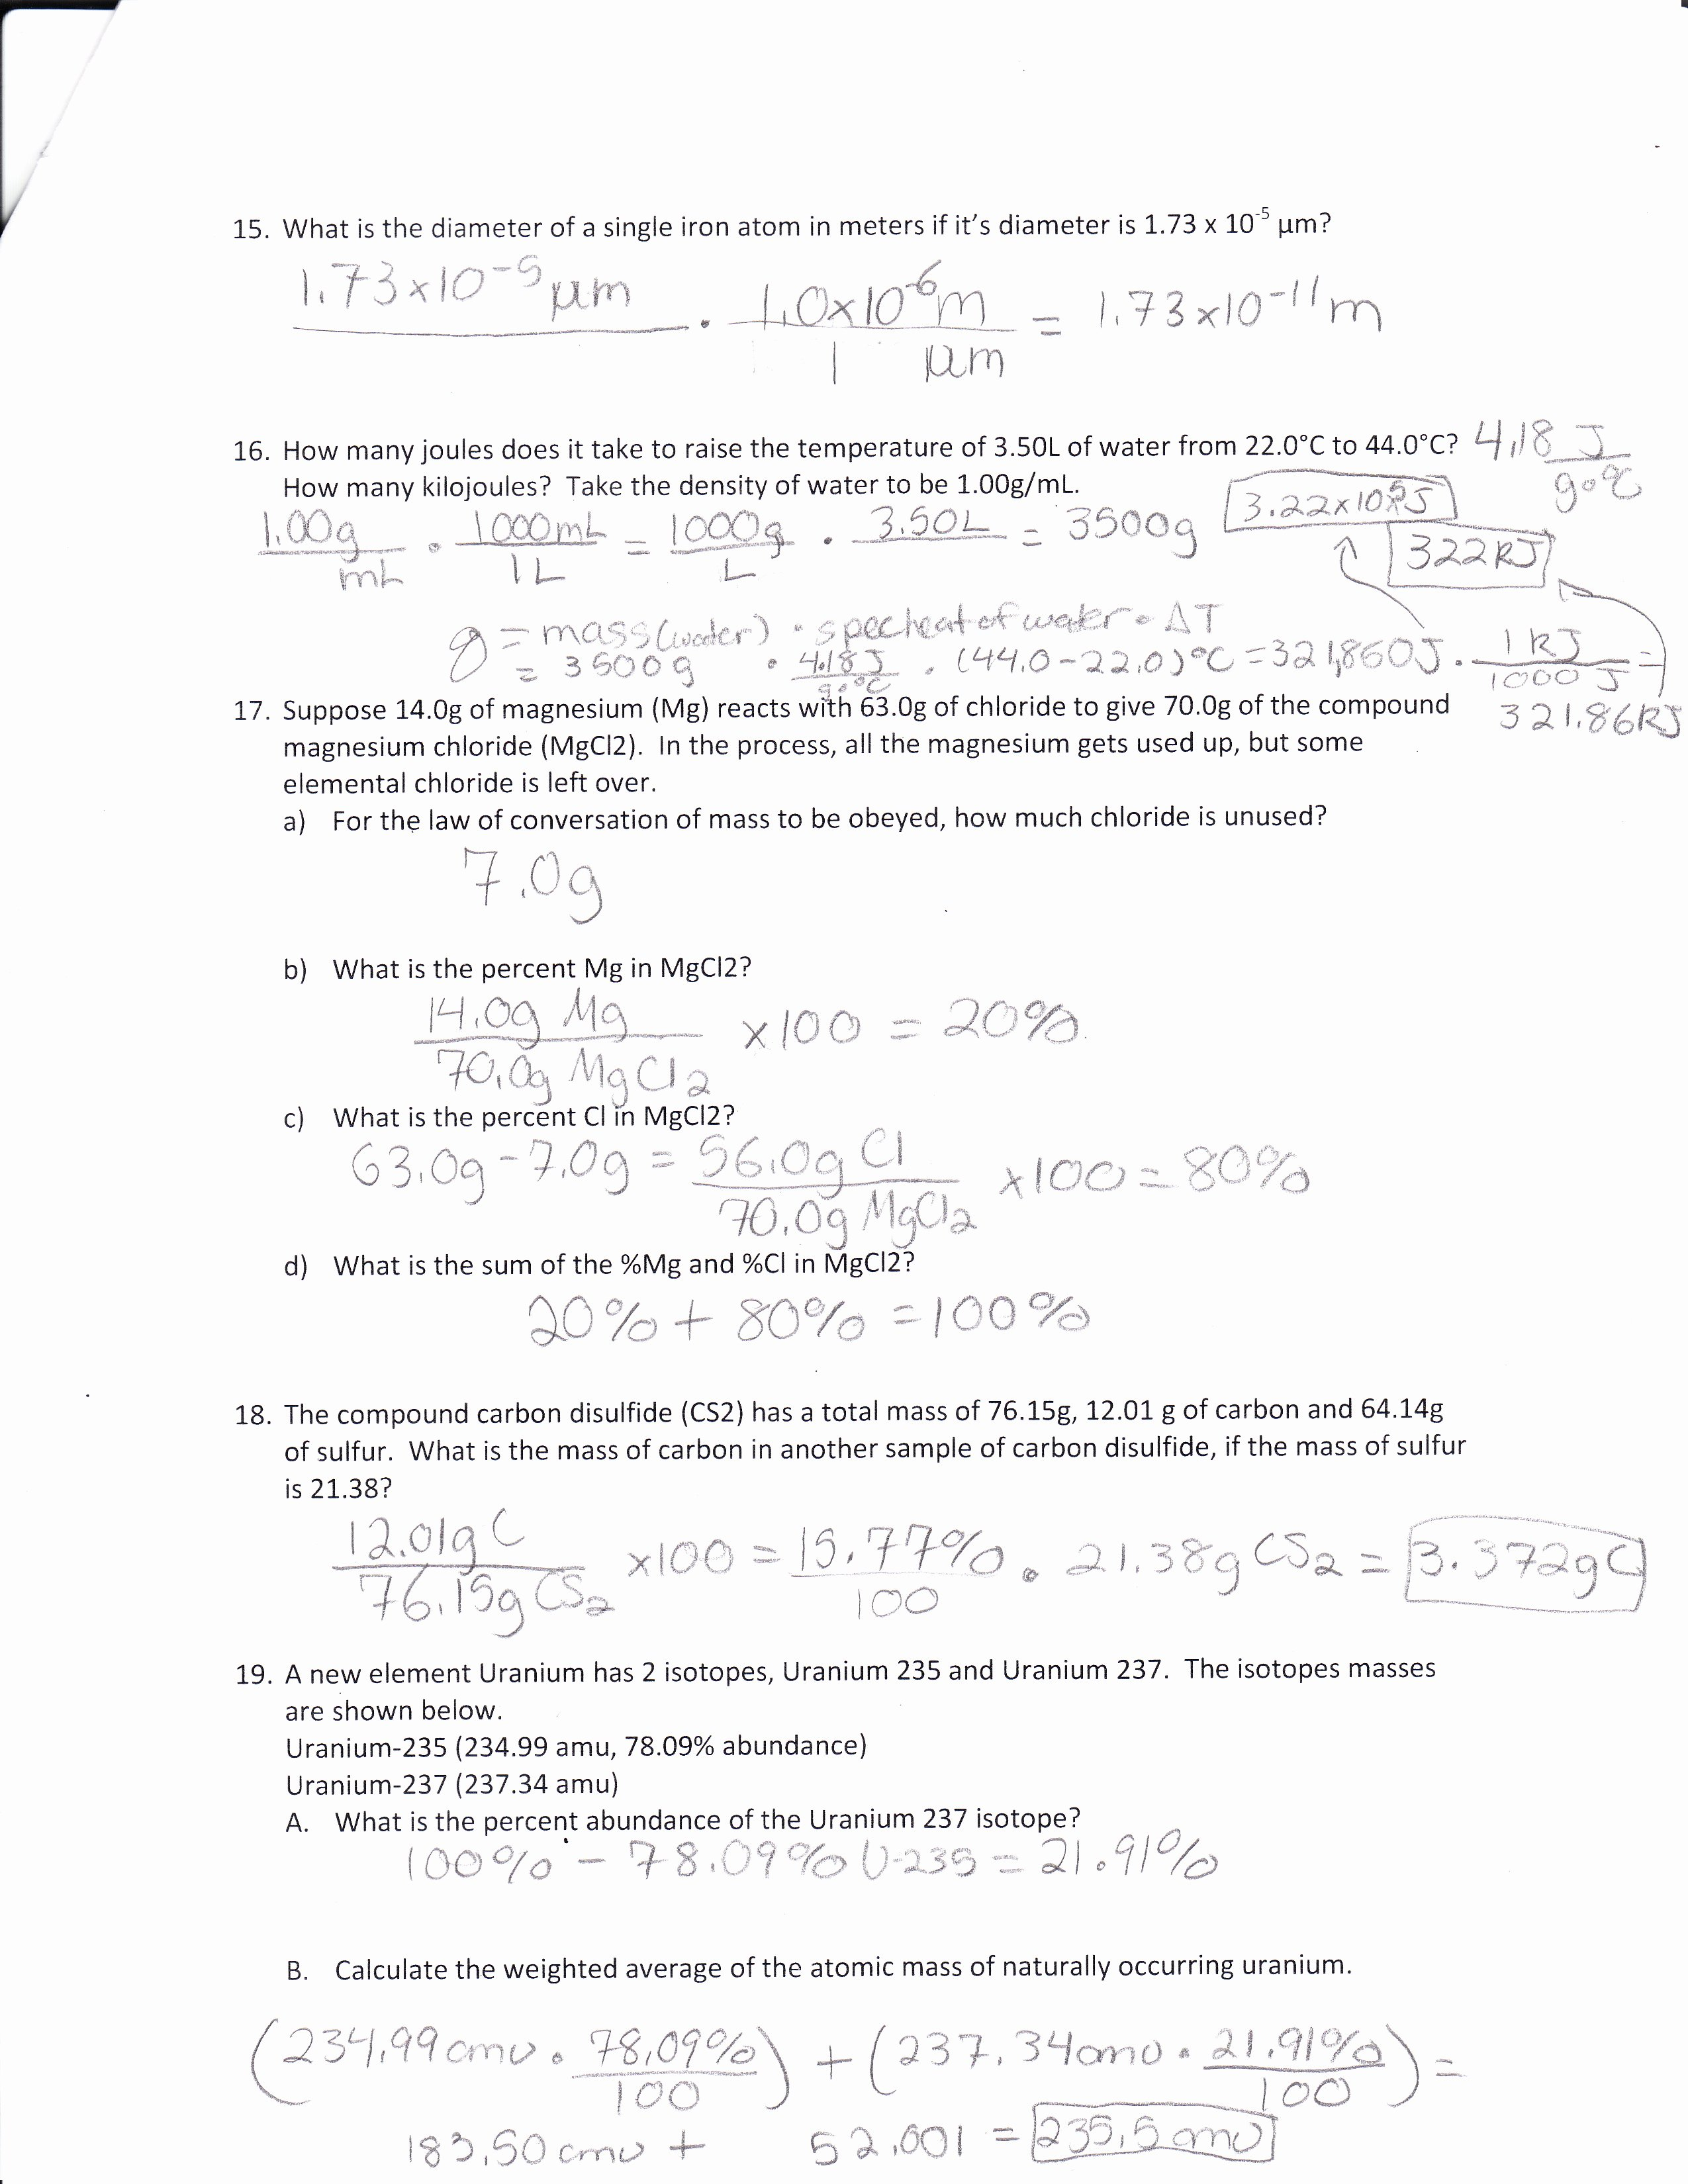 Percent Error Worksheet Answer Key Luxury Calculating Percent by Mass Volume Chem Worksheet 15 2